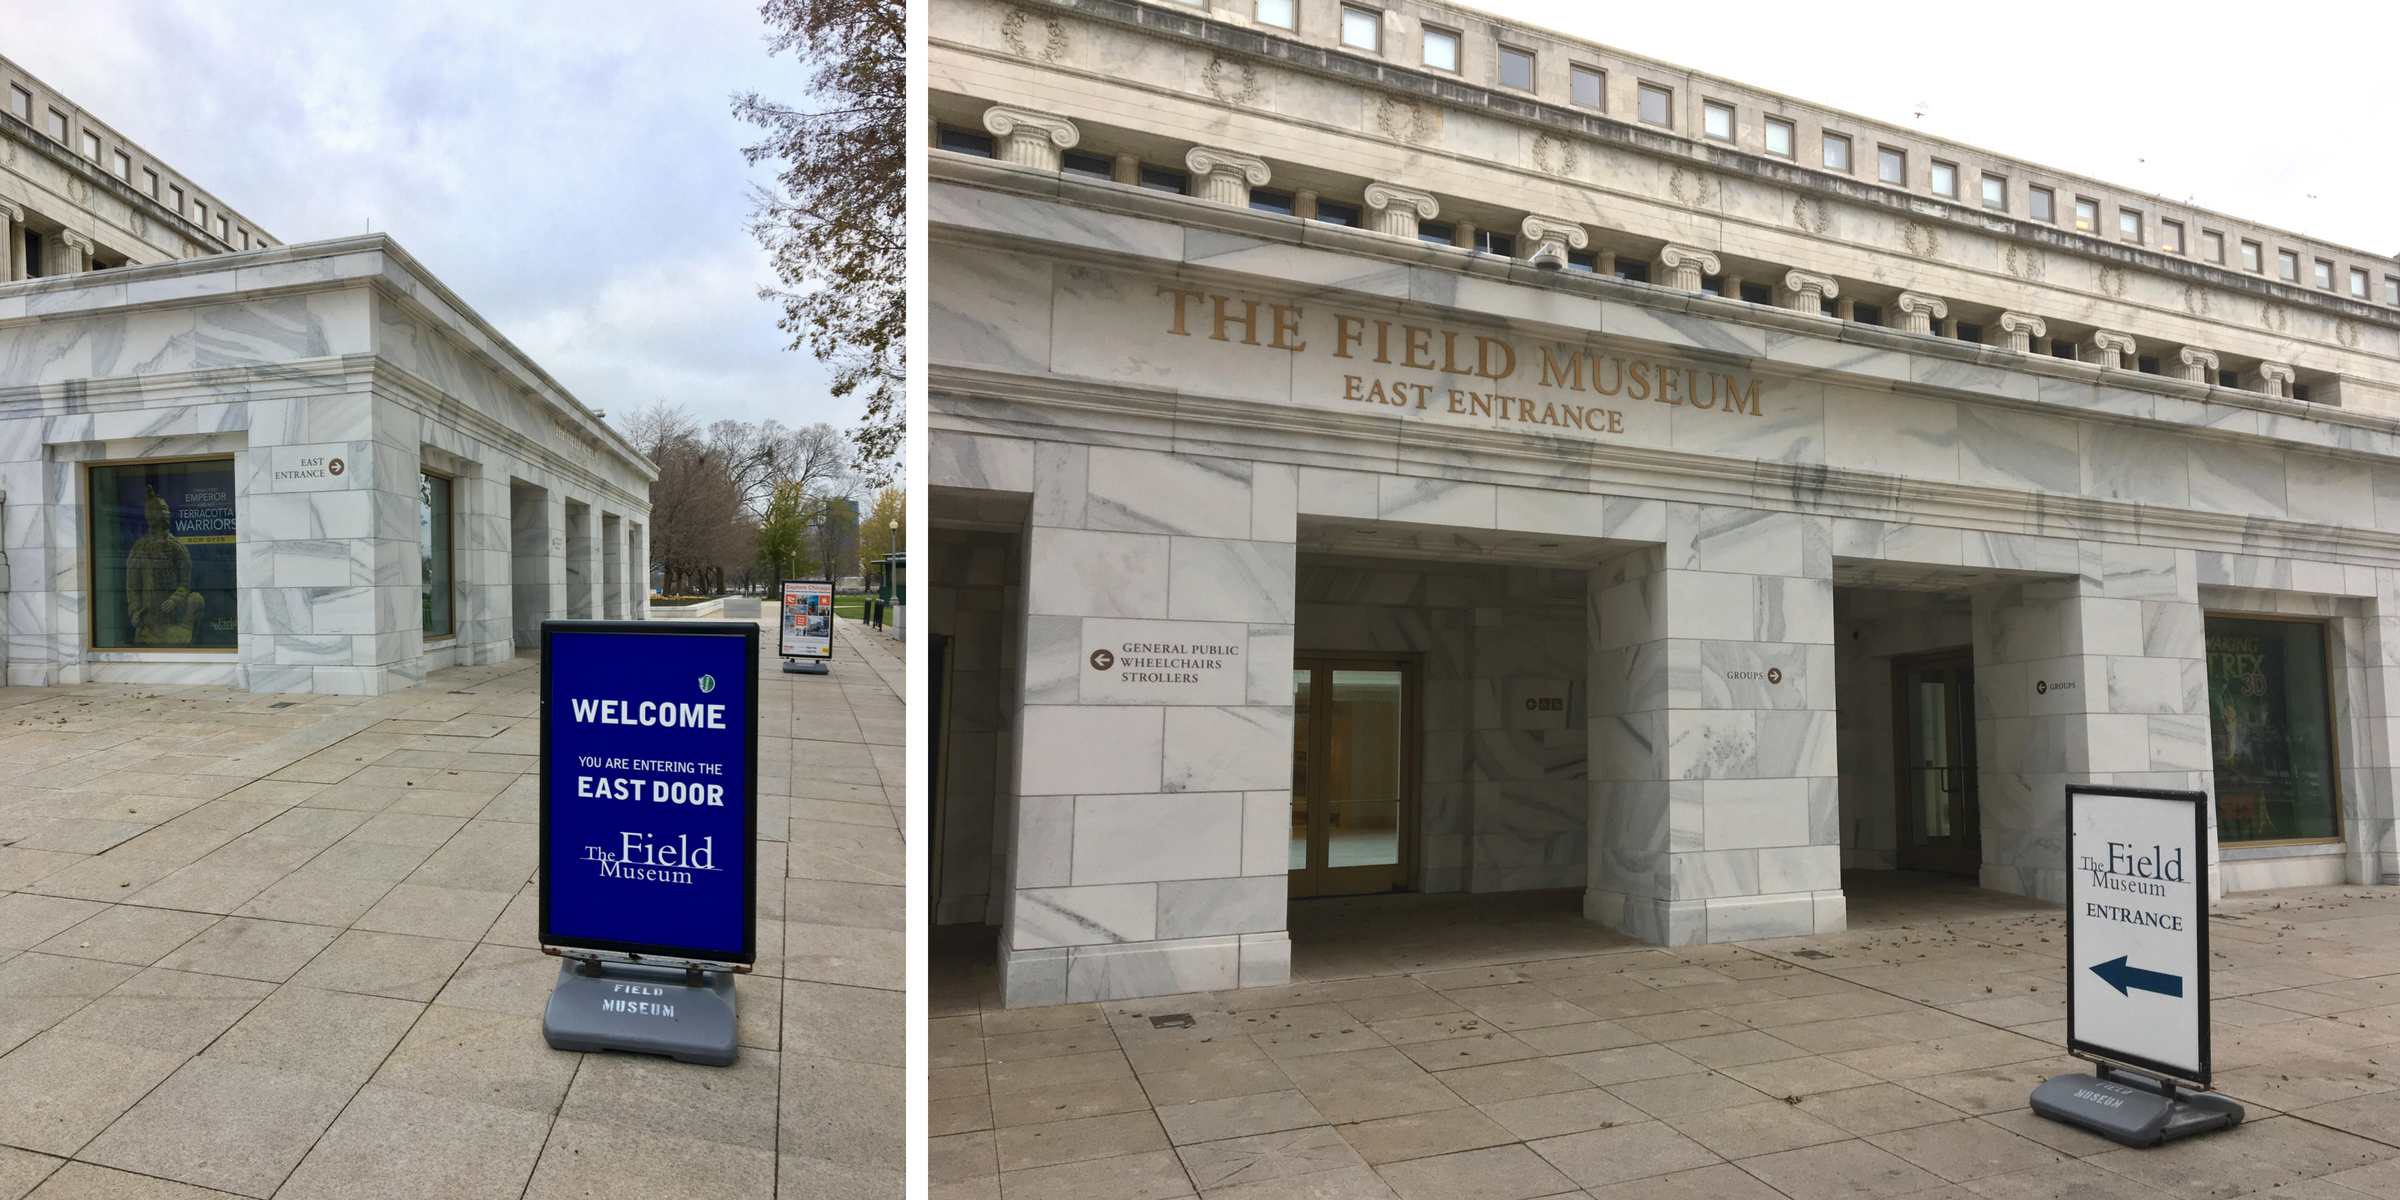 "Side by side photos showing different angle of the entrance to a marble building, with signs that read ""The Field Museum East Entrance"""